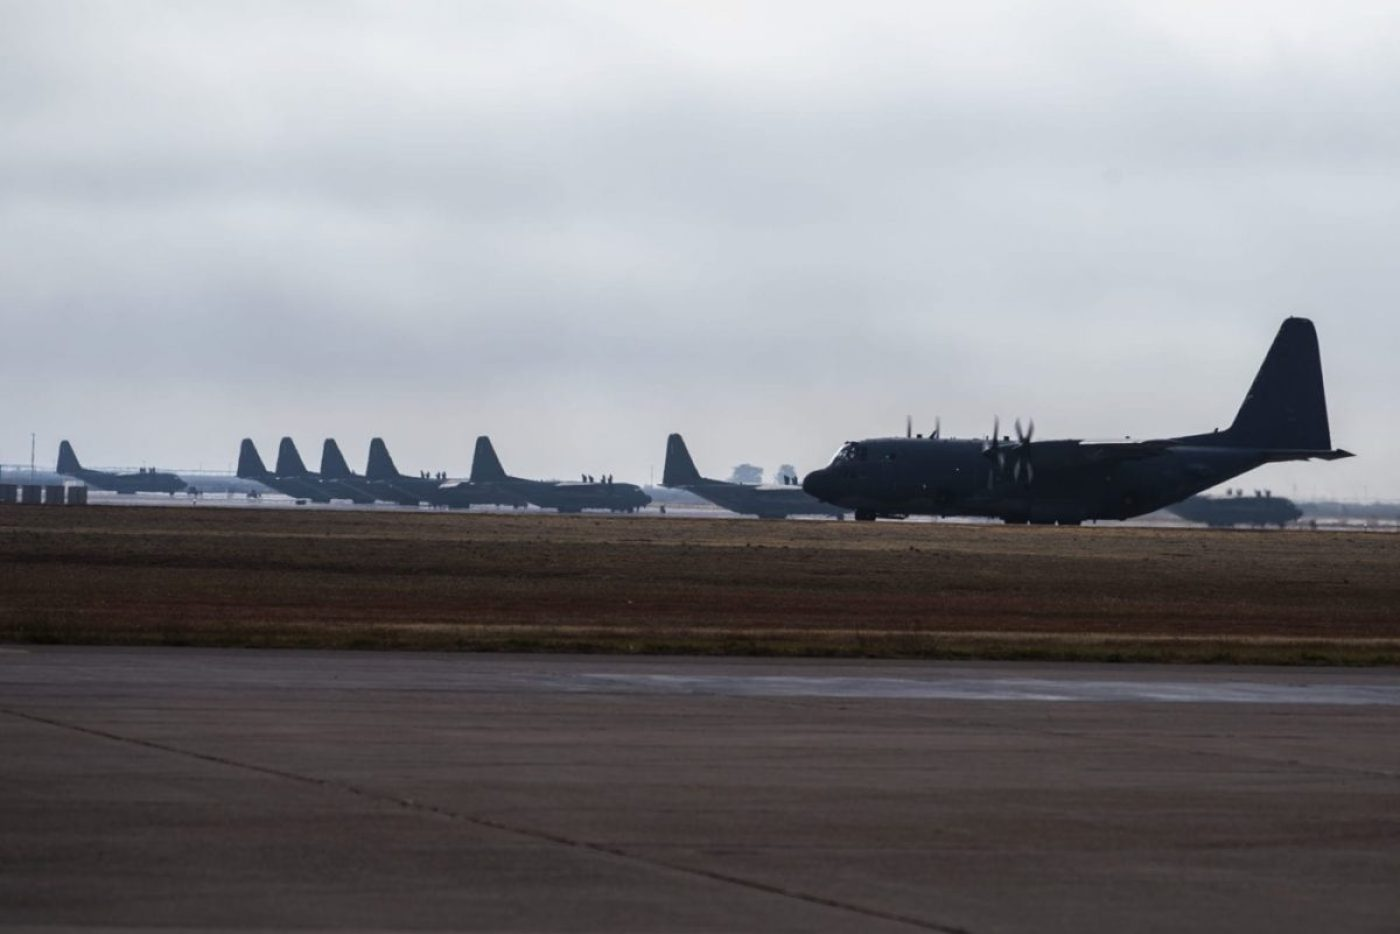 An AC-130W Stinger II gunship, Tail No. 1303, right, taxis the runway at Cannon Air Force Base, N.M., before its final flight prior to retirement Oct. 19, 2020. The Air Force received the aircraft from the Lockheed-Martin factory June 6, 1989, with the original nickname of 'City of Hurricane.' (U.S. Air Force photo by Staff Sgt. Luke Kitterman)